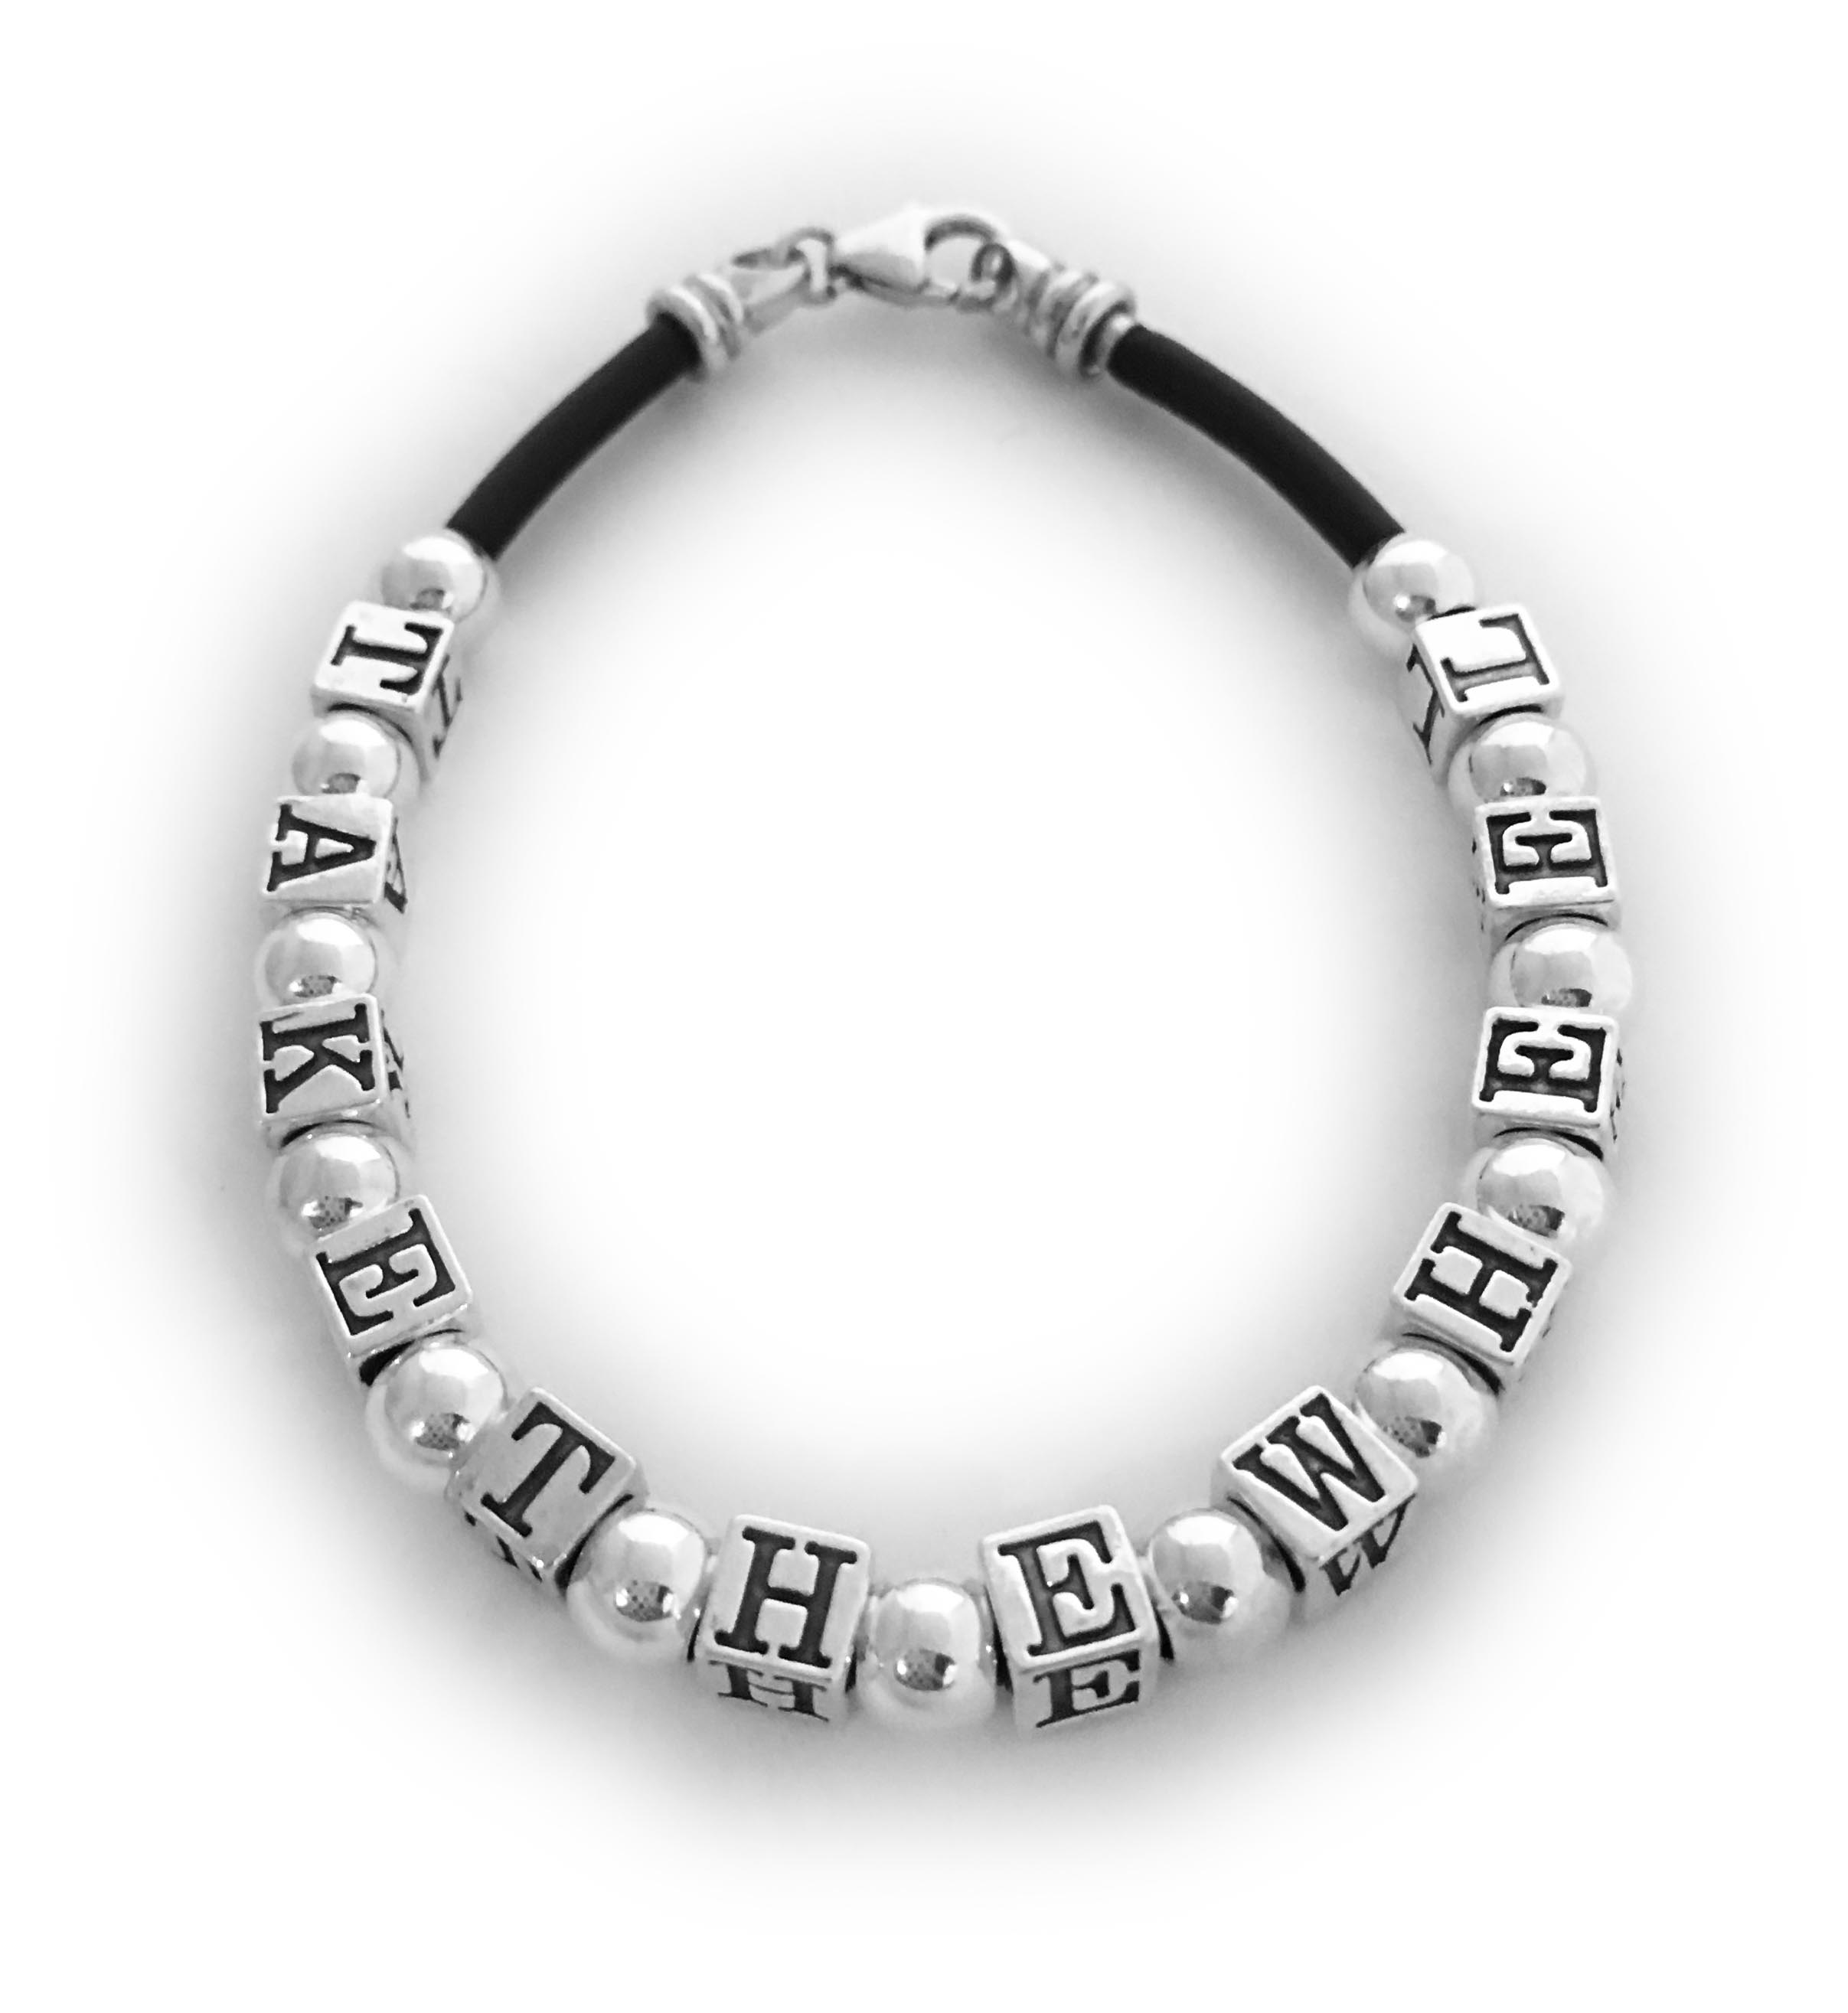 "This is a Special Order ""Take the Wheel"" Bracelet. They added 6mm round sterling silver beads inbetween each letter. Call/text/email me to place a Special Order."